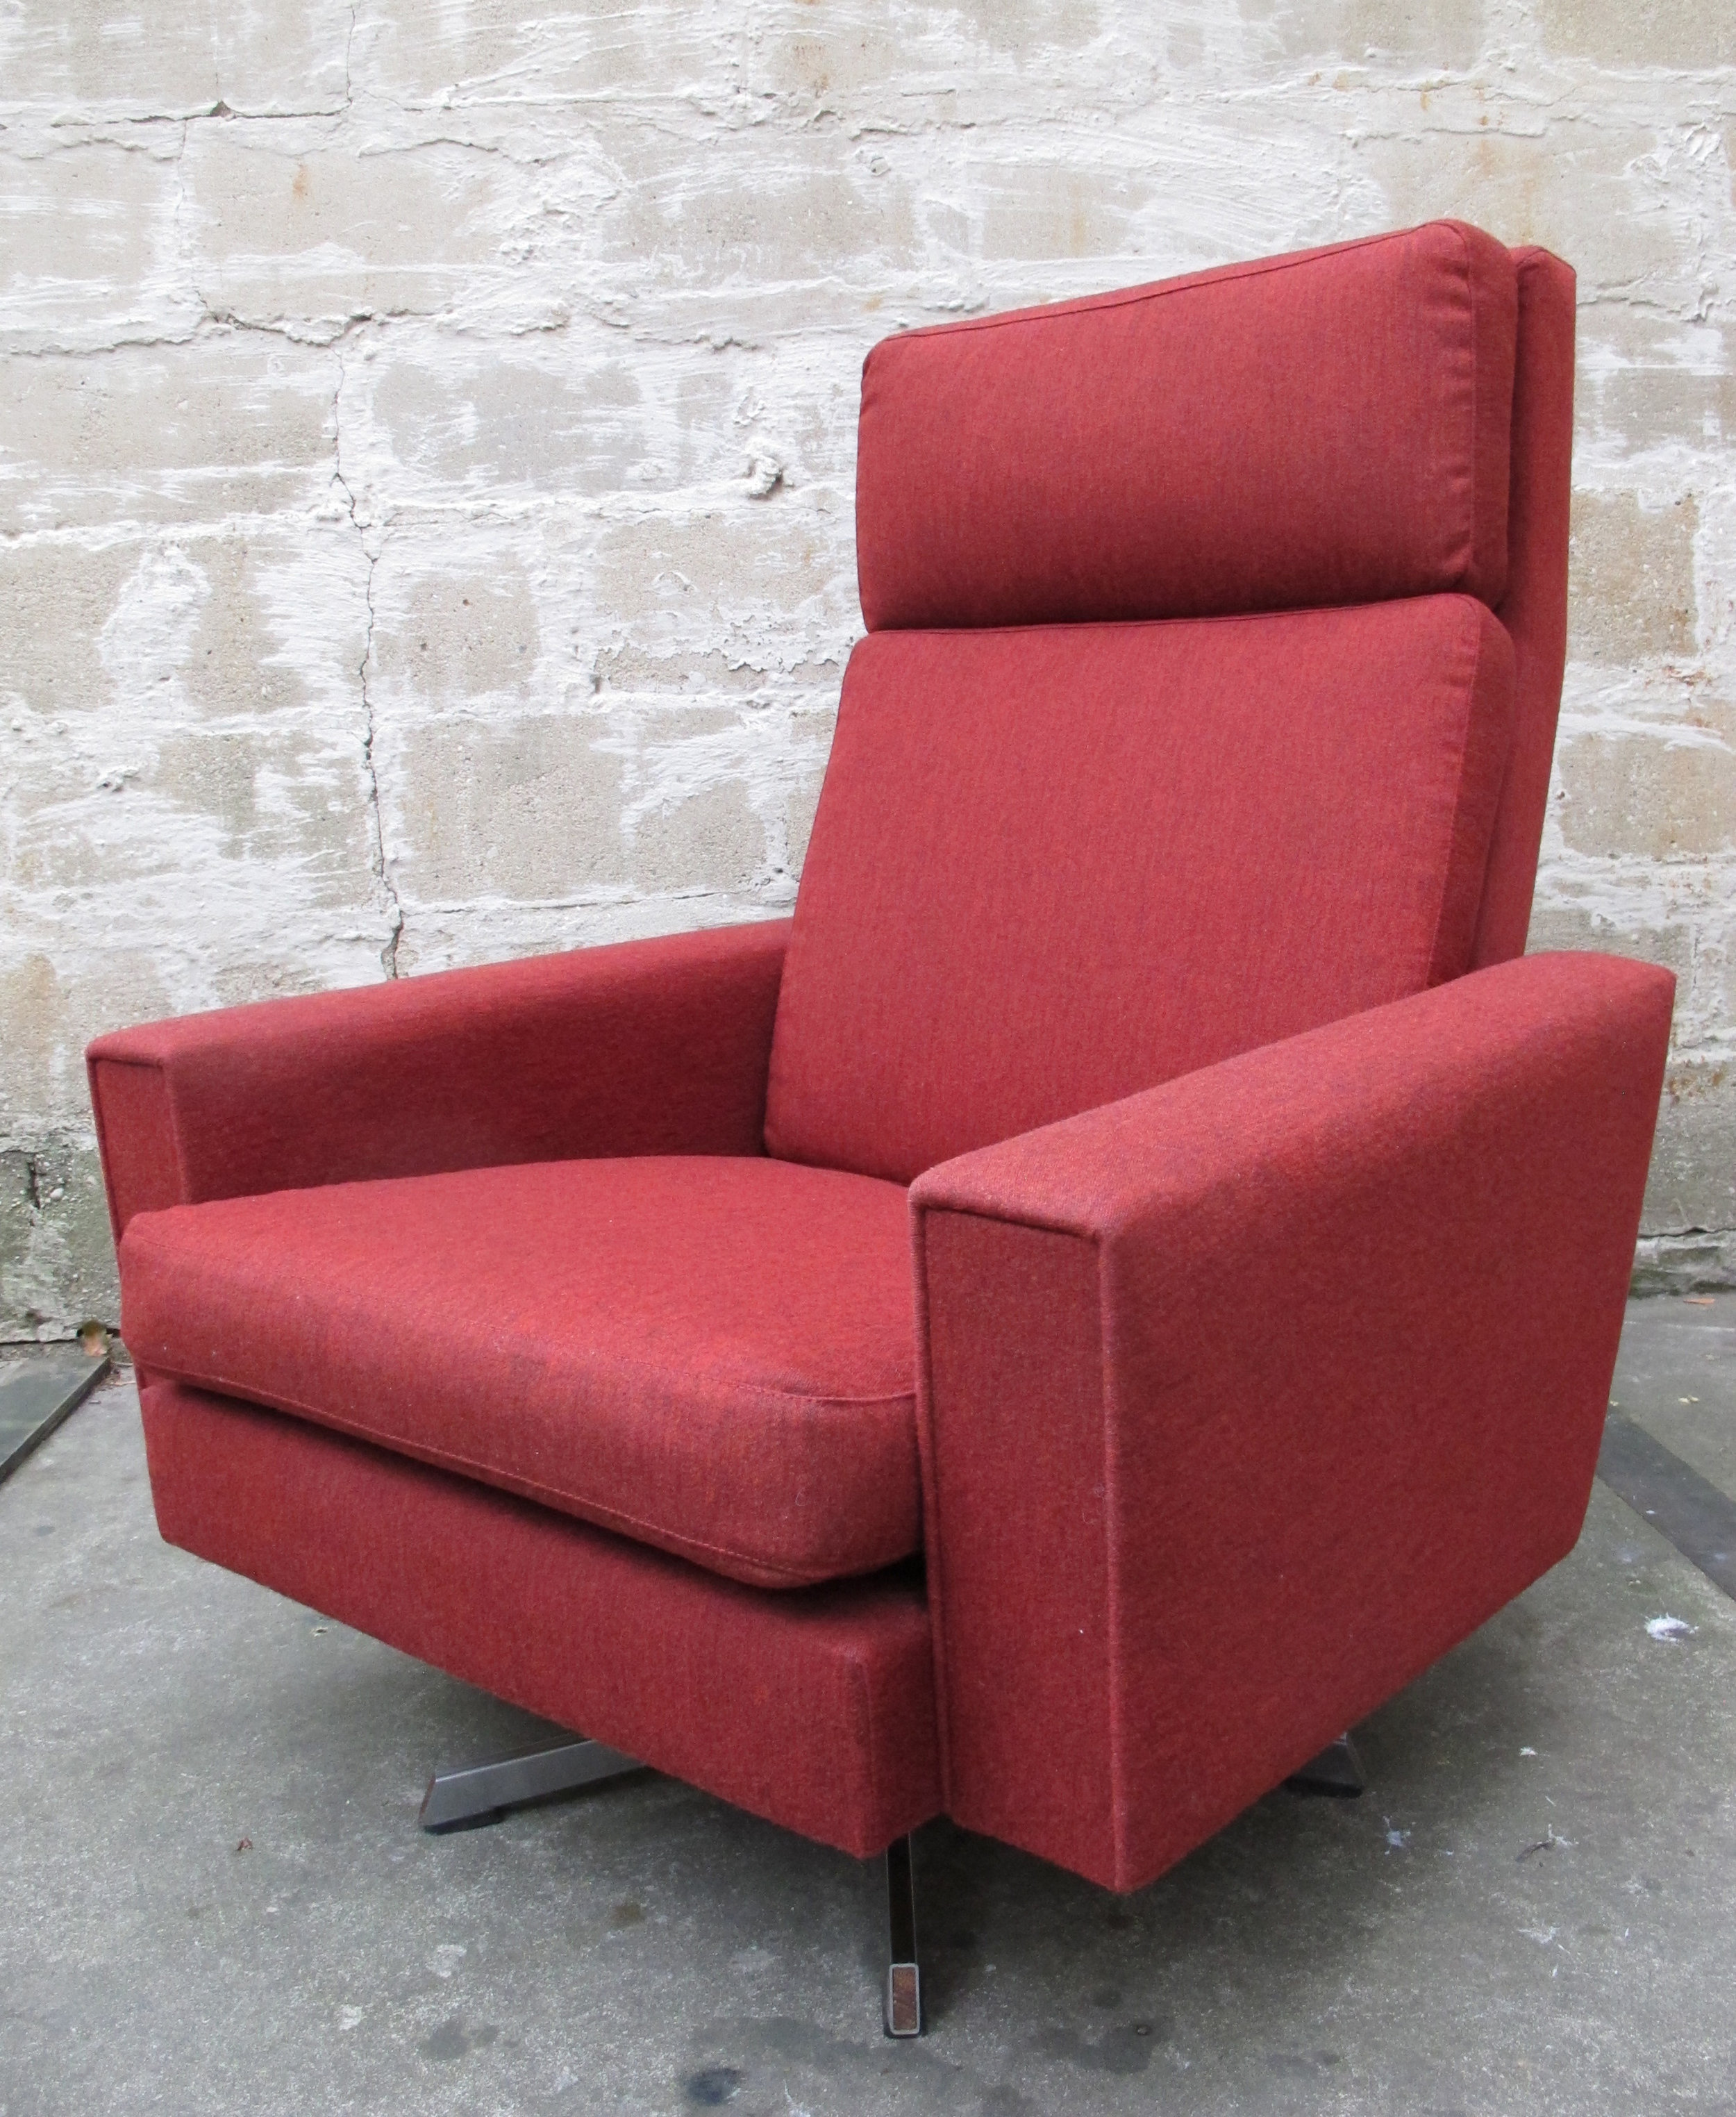 DANISH MODERN SWIVEL LOUNGE CHAIR BY GEORG THAMS